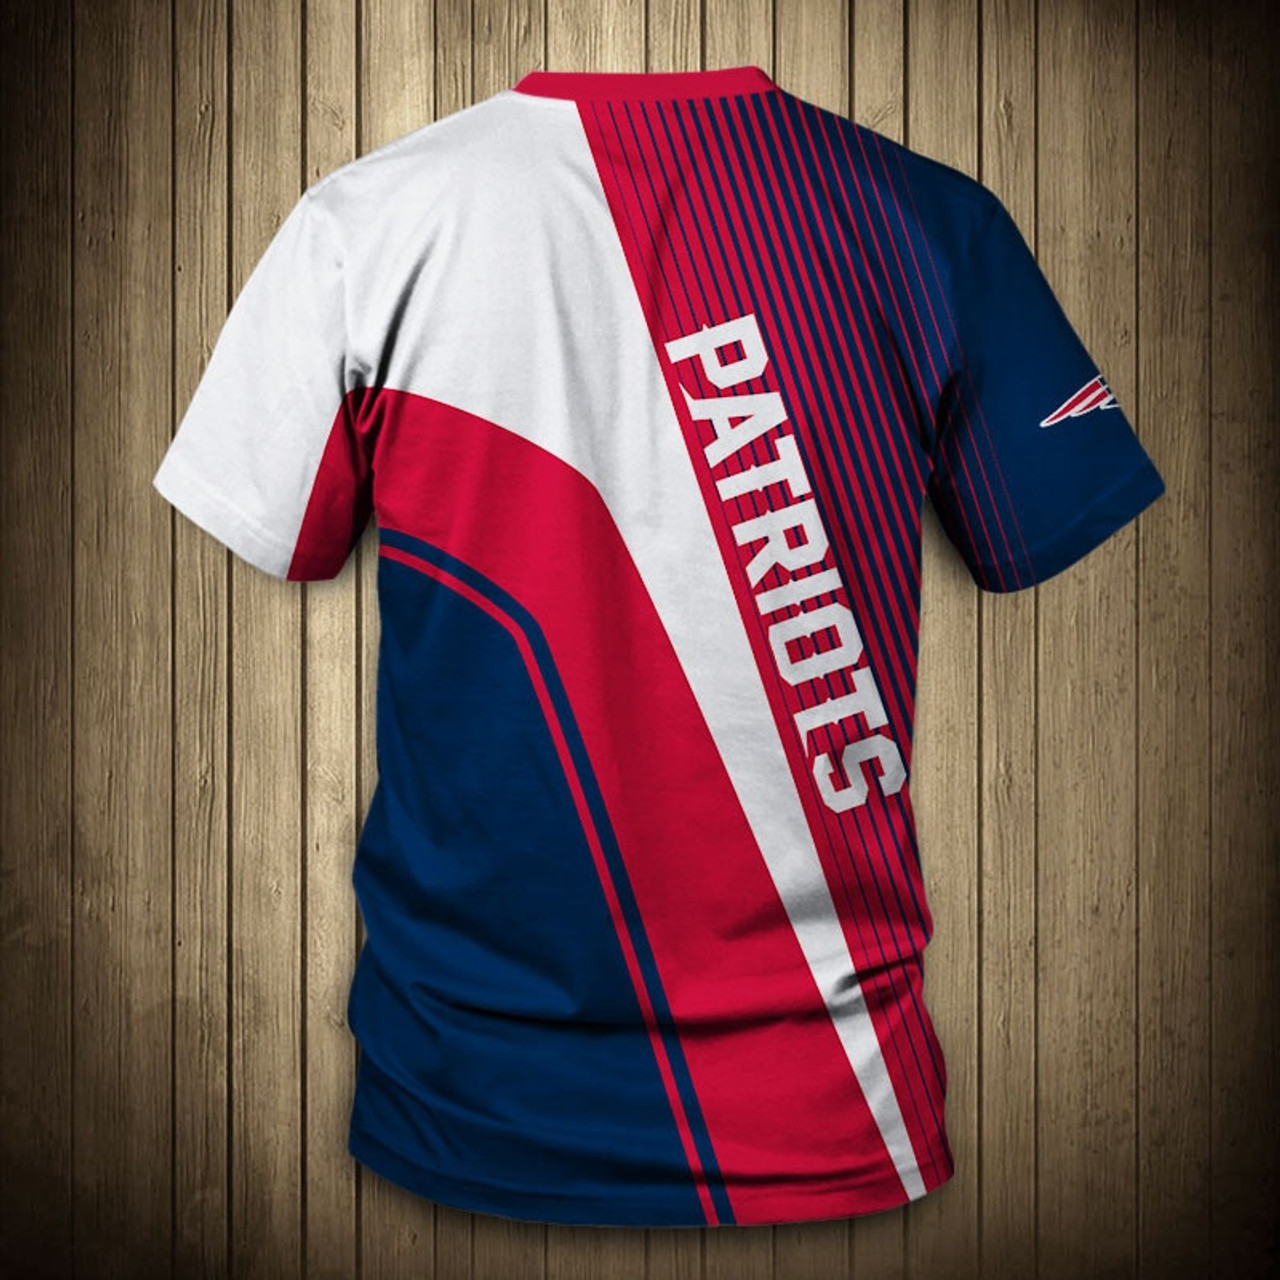 **(OFFICIAL-NEW-N.F.L.NEW-ENGLAND-PATRIOTS-TRENDY-TEAM-TEES/CUSTOM-3D-PATRIOTS-OFFICIAL-LOGOS & OFFICIAL-CLASSIC-PATRIOTS-TEAM-COLORS/DETAILED-3D-GRAPHIC-PRINTED-DOUBLE-SIDED/ALL-OVER-GRAPHIC-PRINTED-DESIGNED/PREMIUM-N.F.L.PATRIOTS-GAME-TEAM-TEES)**